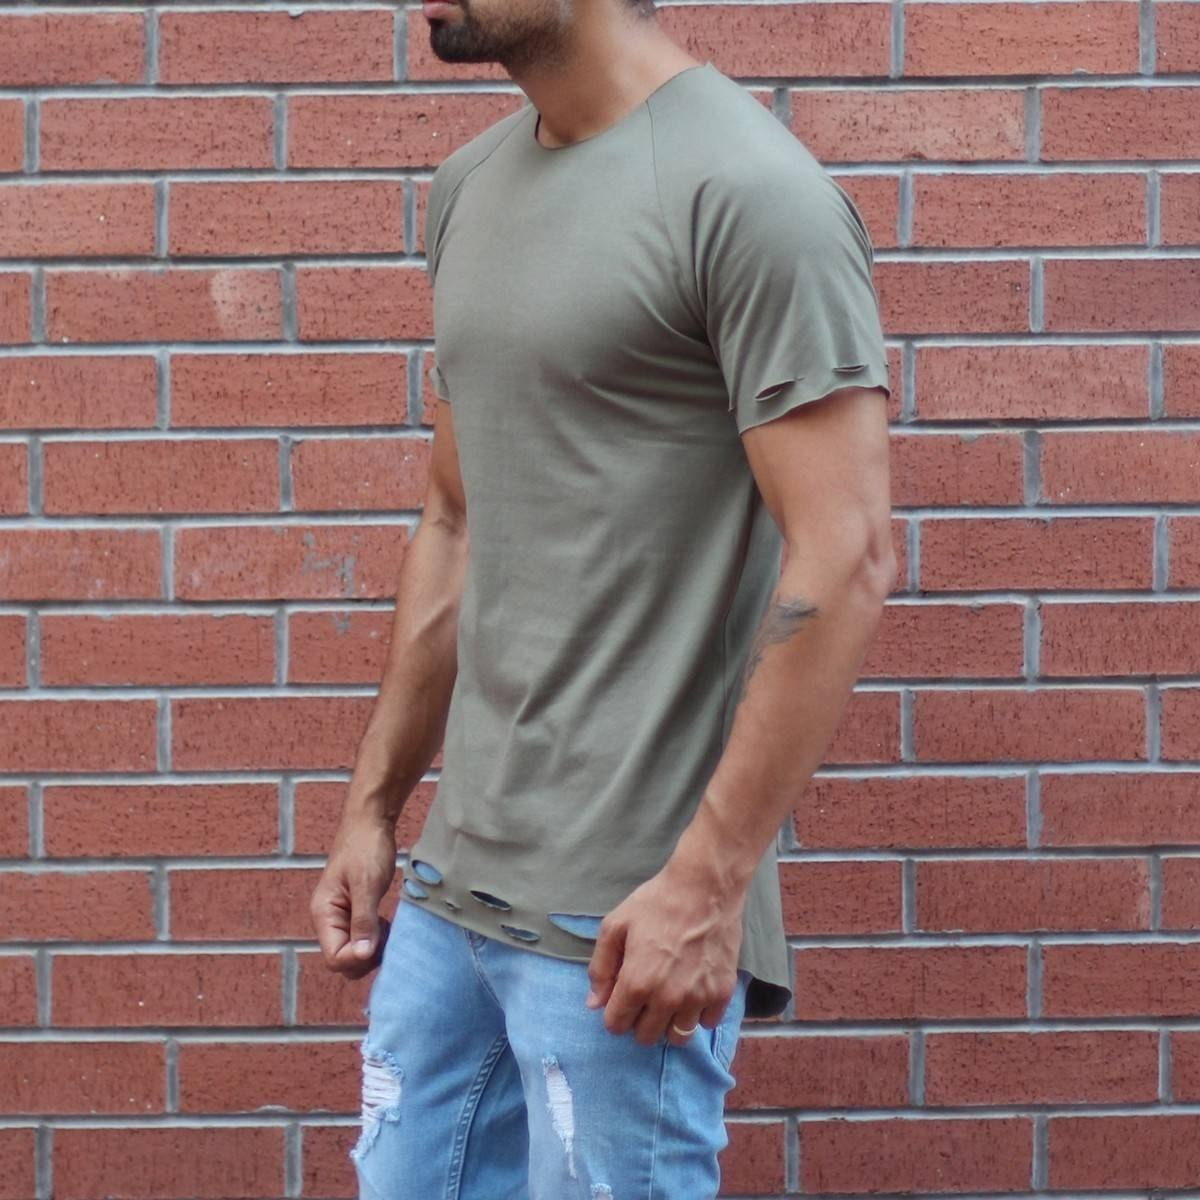 Men's Round Neck Stylish T-Shirt With Rips In Khaki MV T-shirt Collection - 2